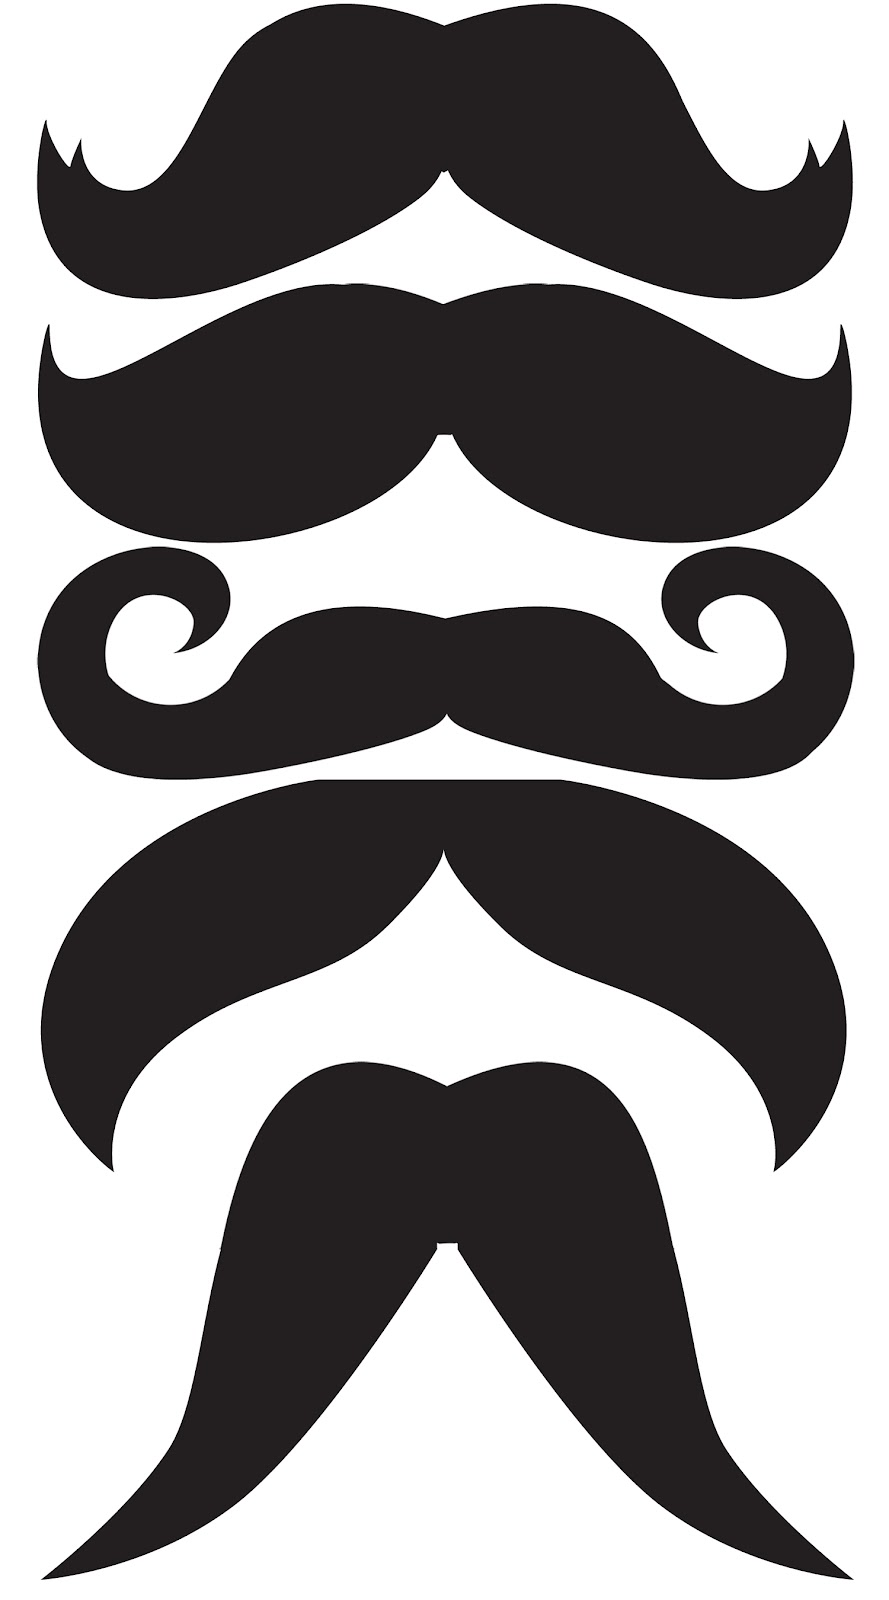 mustache print out template - sew fantastic moustache mug rug tutorial